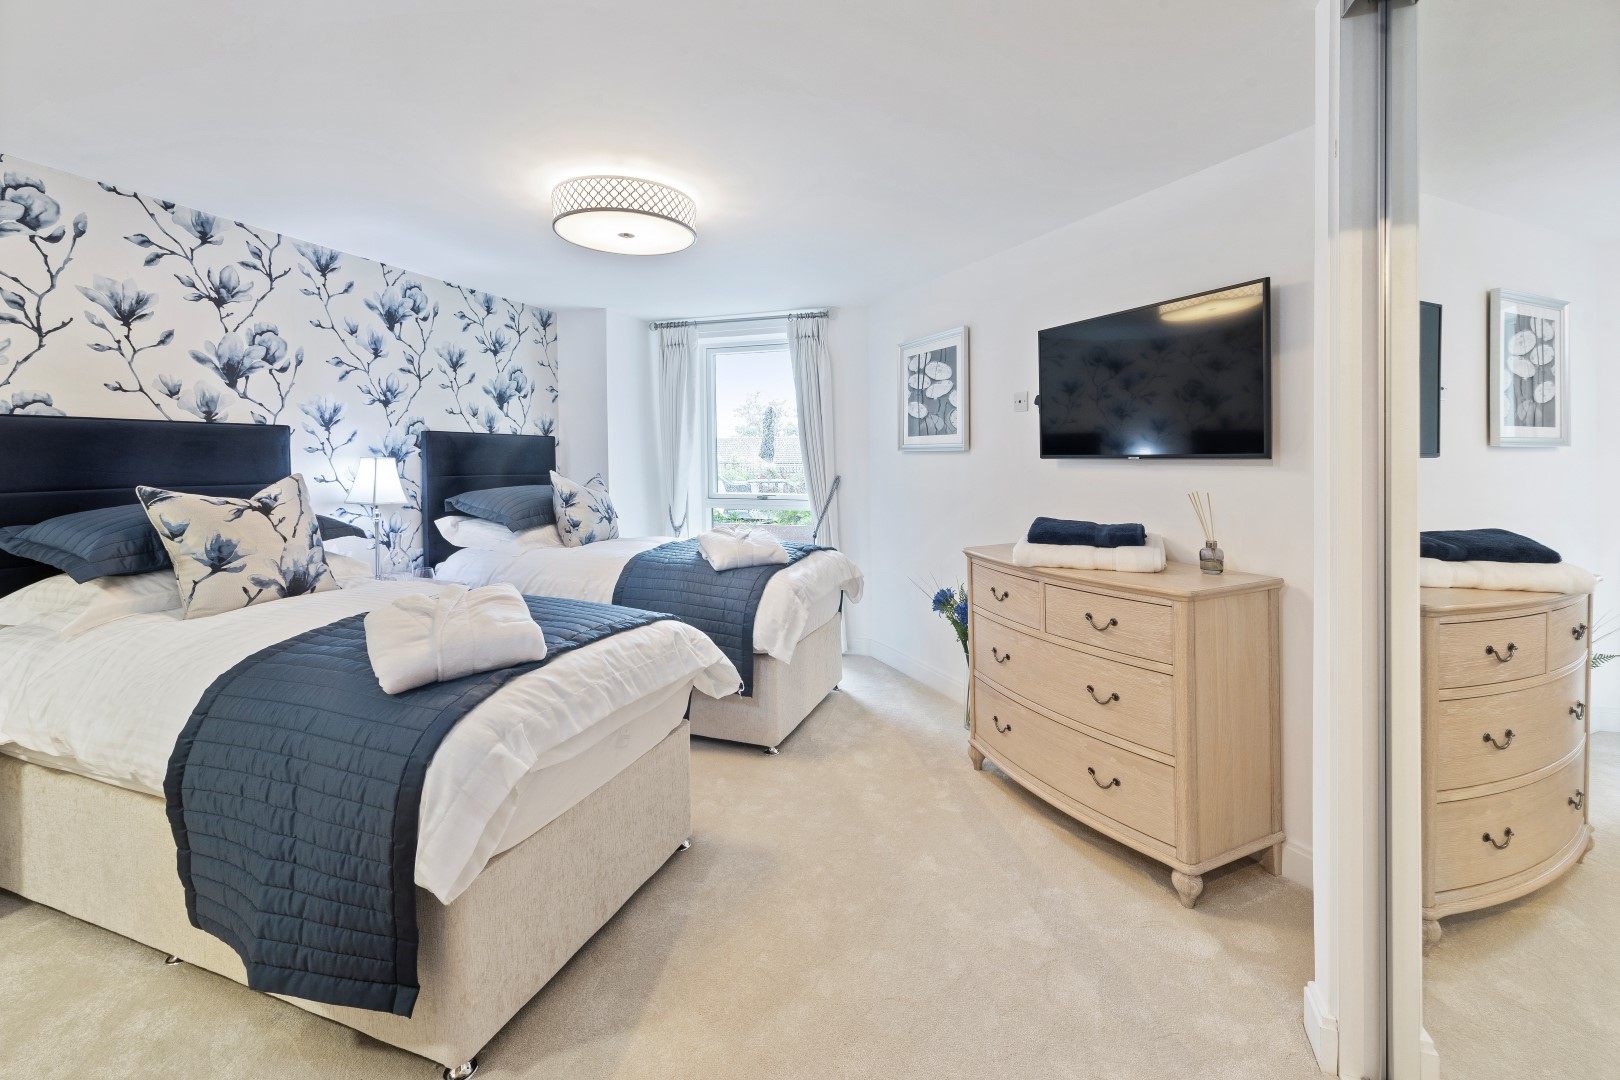 An example of the guest suites that McCarthy and Stone developments have for overnight visitors.